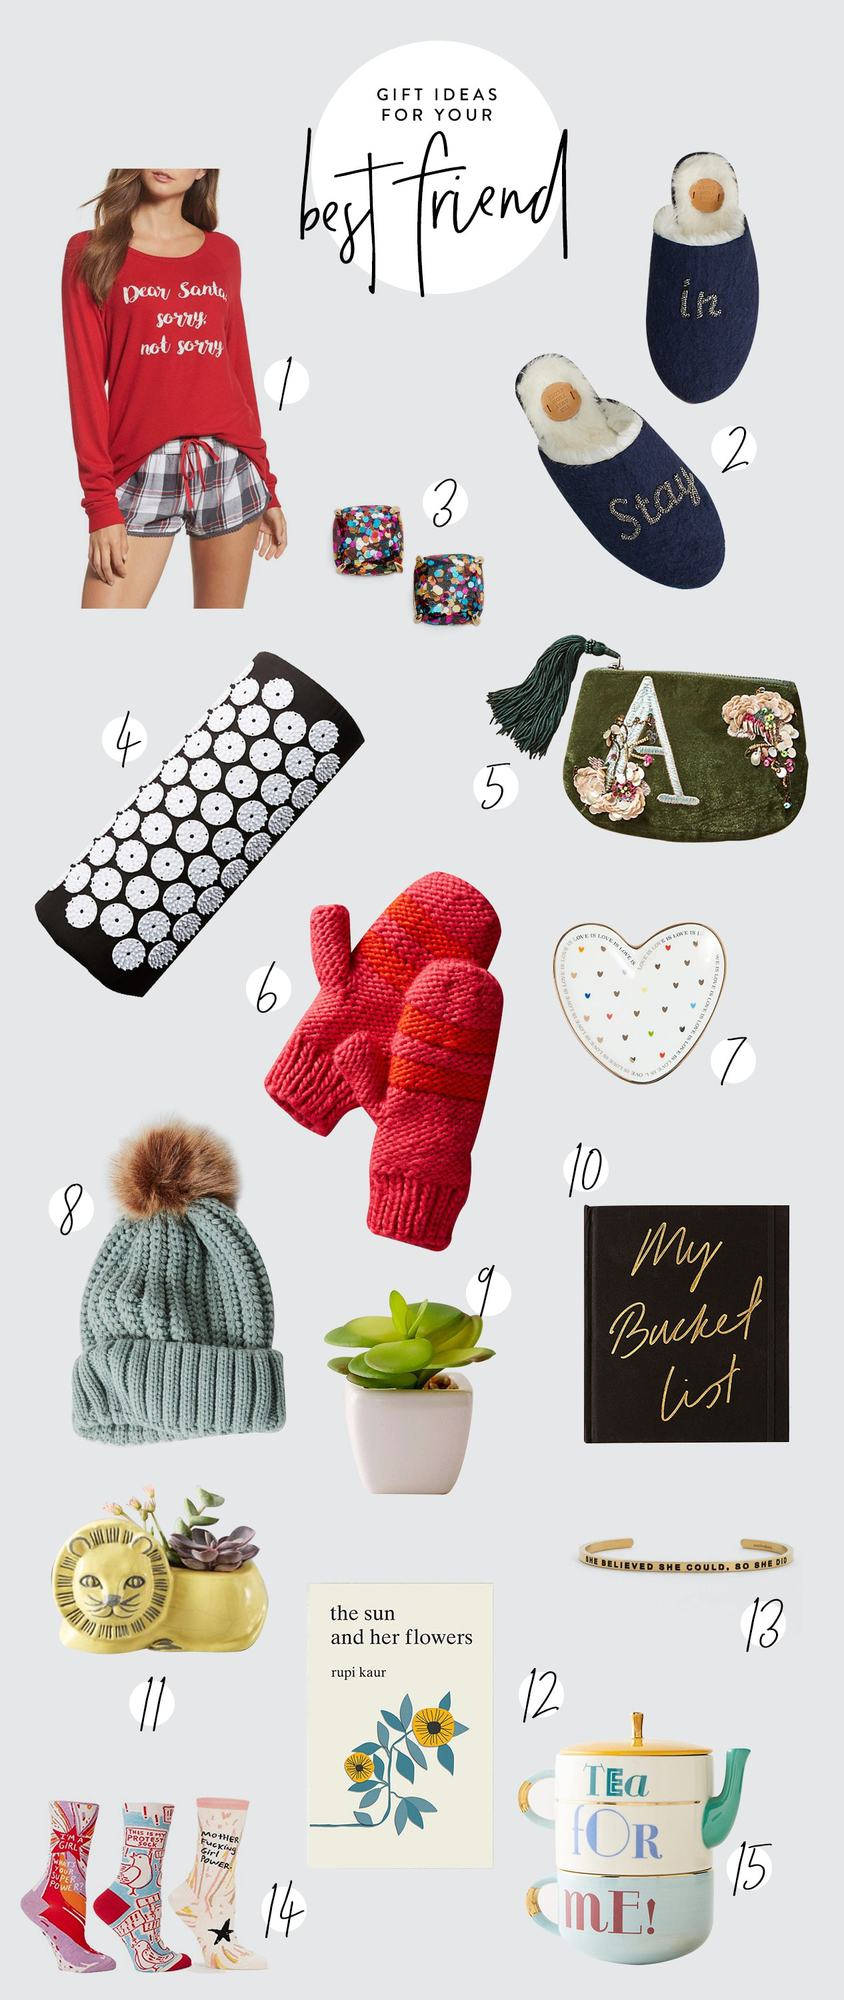 We know how important your best friend is to you, so that's why we rounded up the best gifts for best friends. Buy your bestie one of these fun and thoughtful gifts and you're sure to put a smile on her face! #giftguide #holiday #shopping